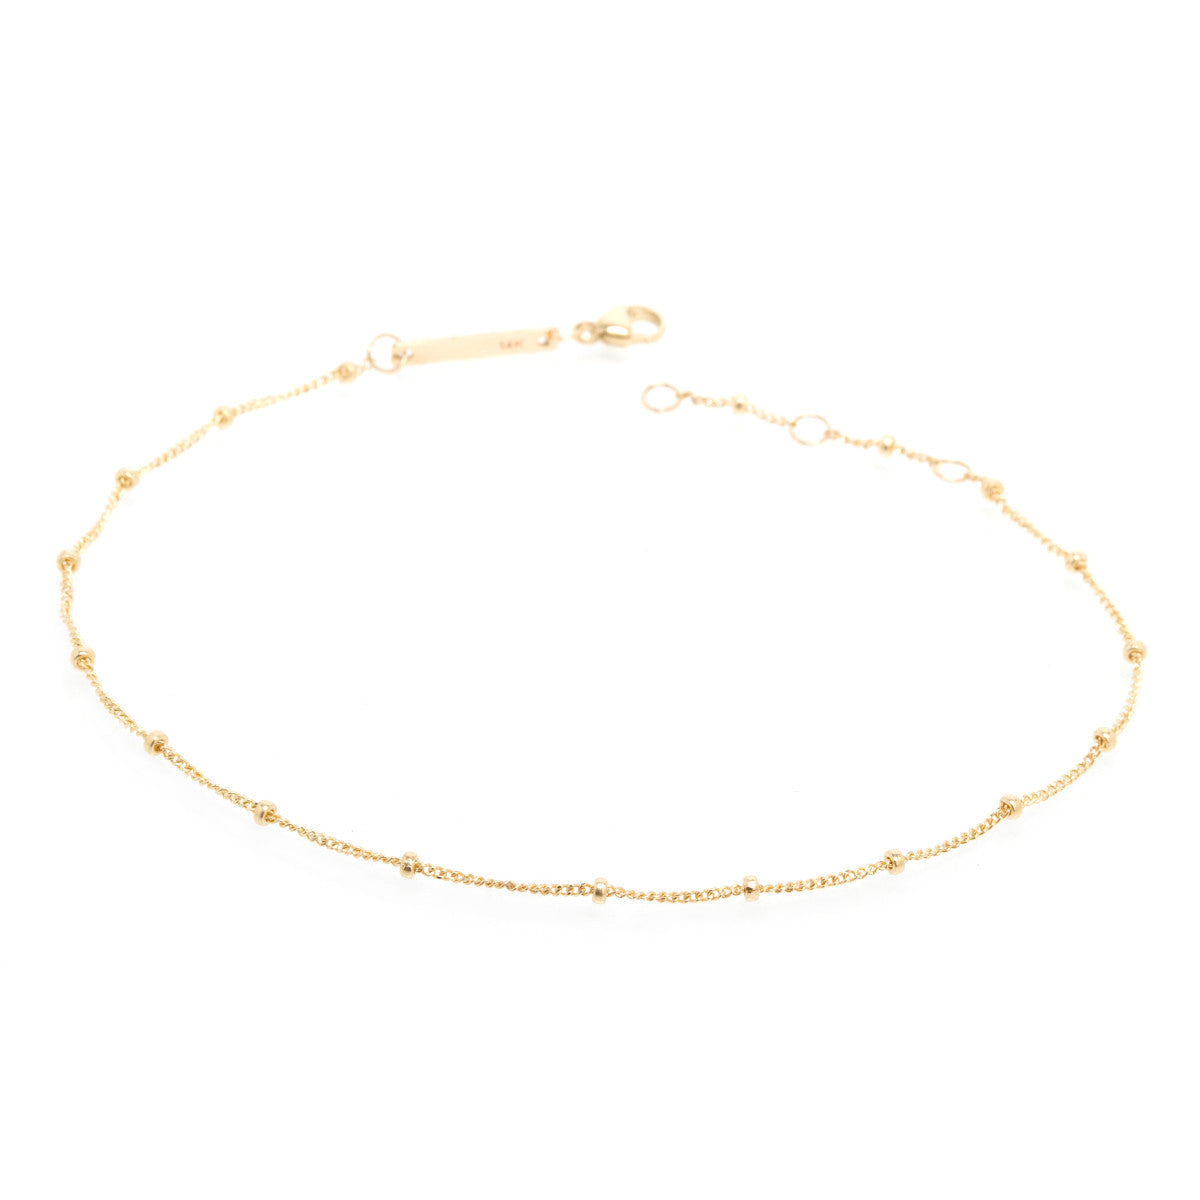 Zoë Chicco 14kt Yellow Gold Curb and Bead Chain Anklet